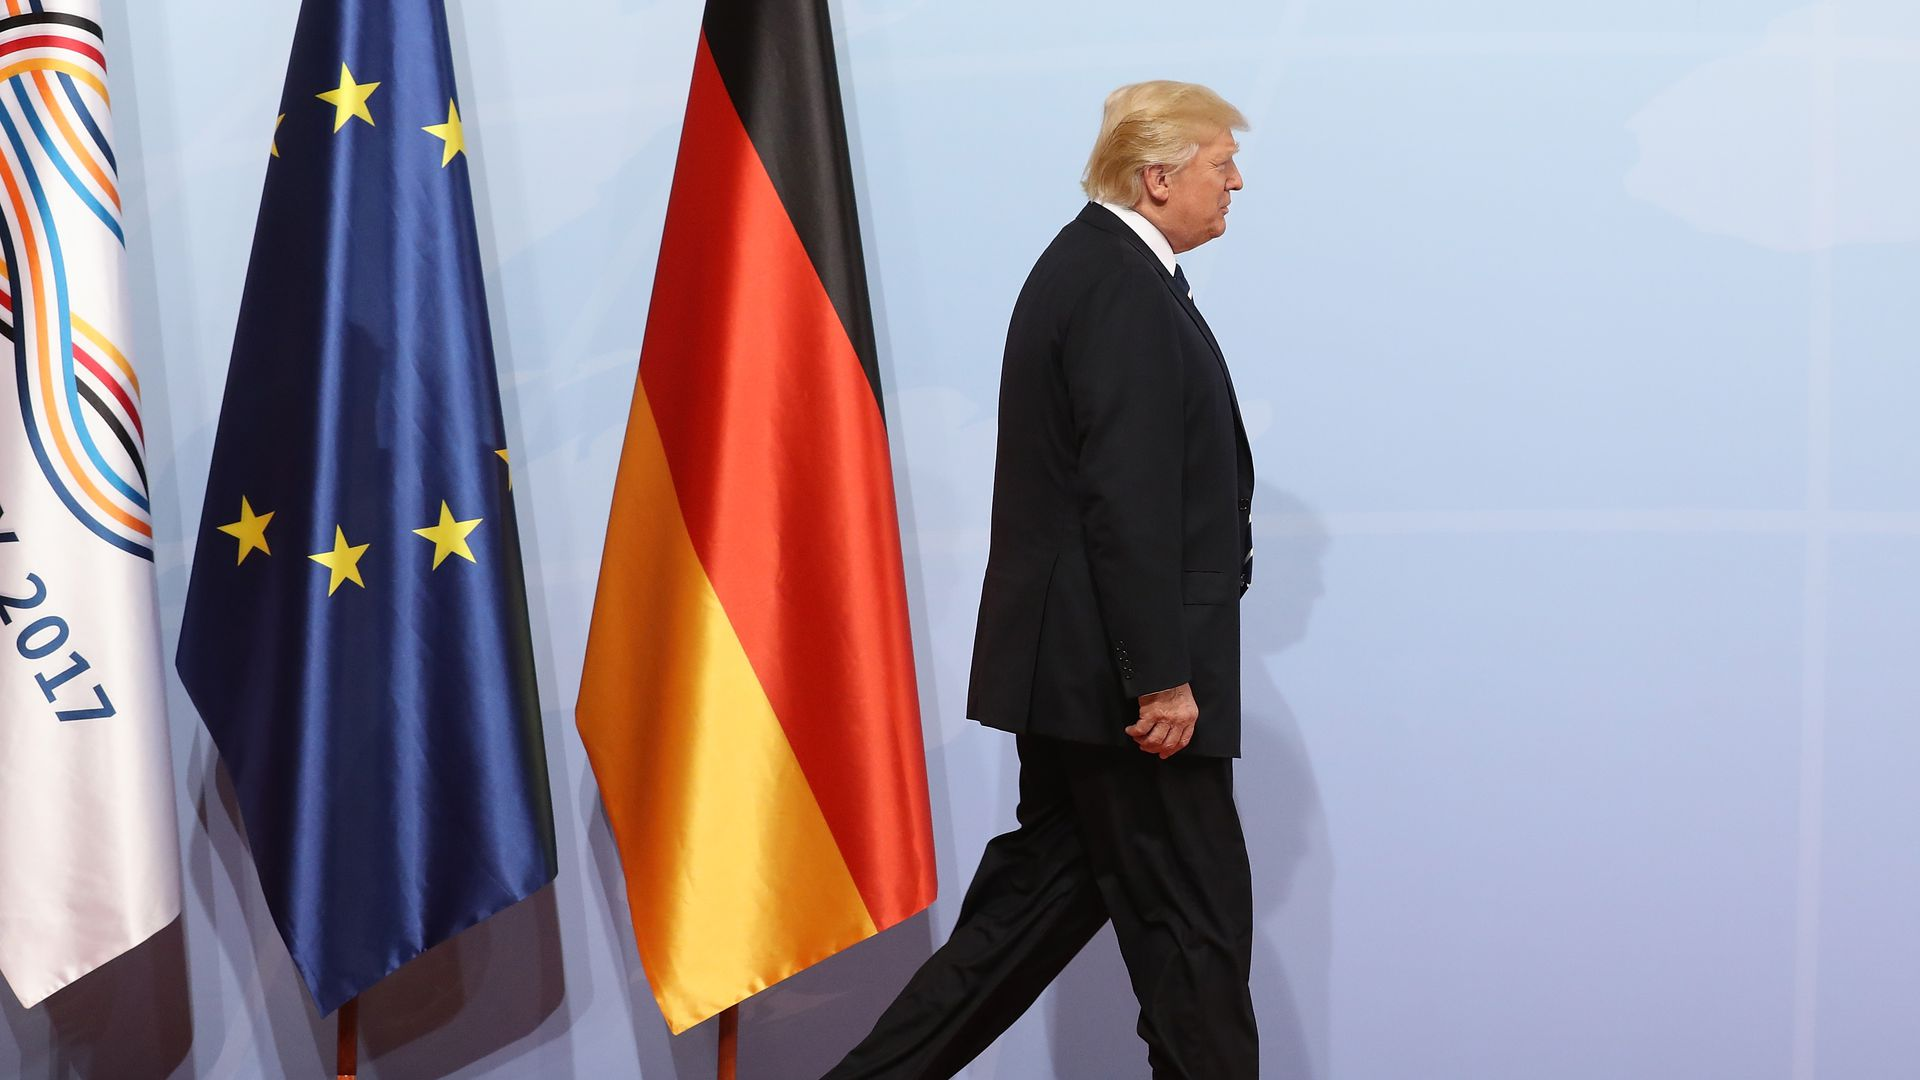 Trump walks past the German and EU flags